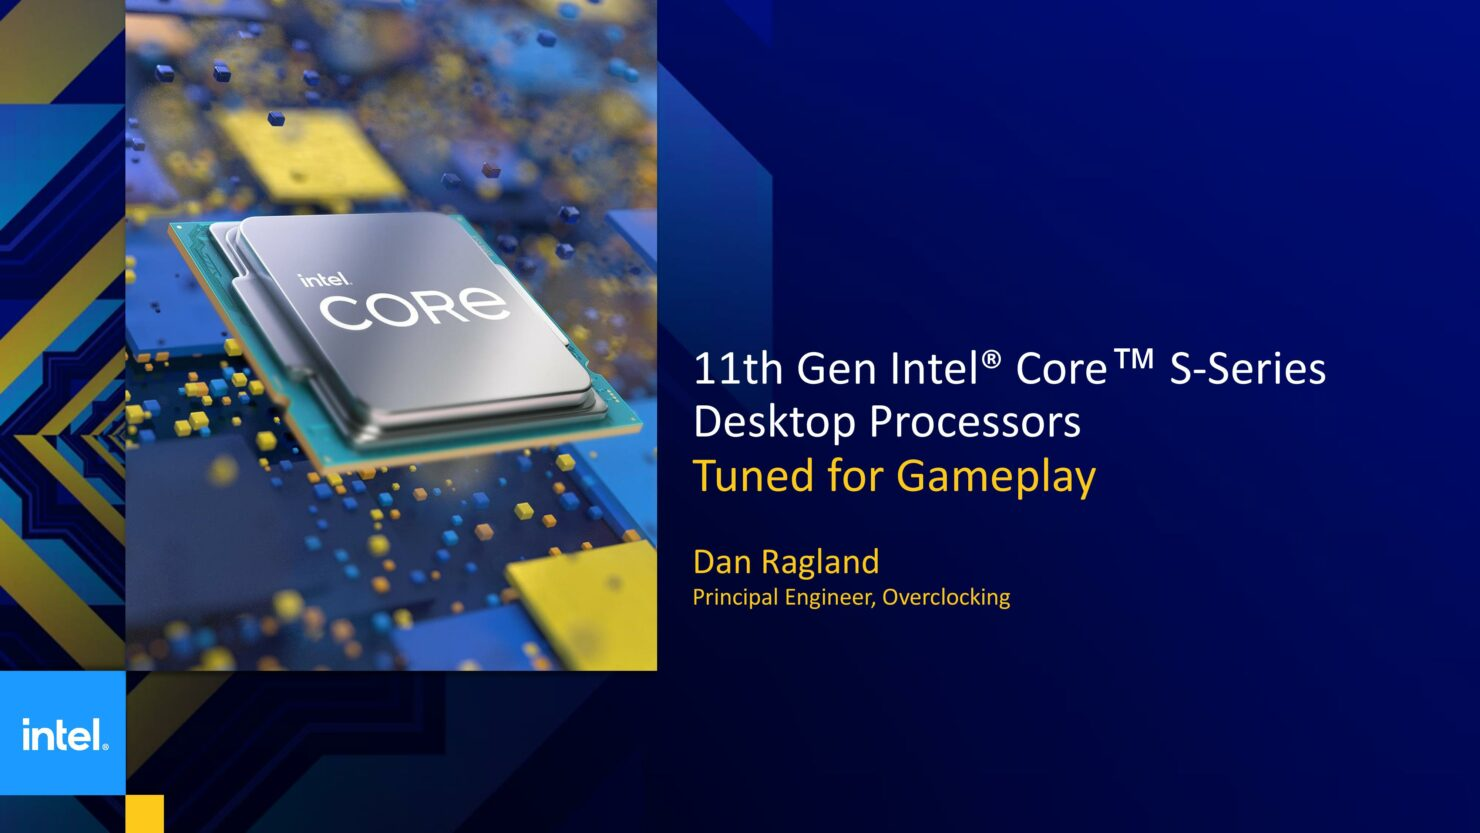 11thgenintelcore_s_series_launch_pressdeck_embargoed_until_march16th-page-018